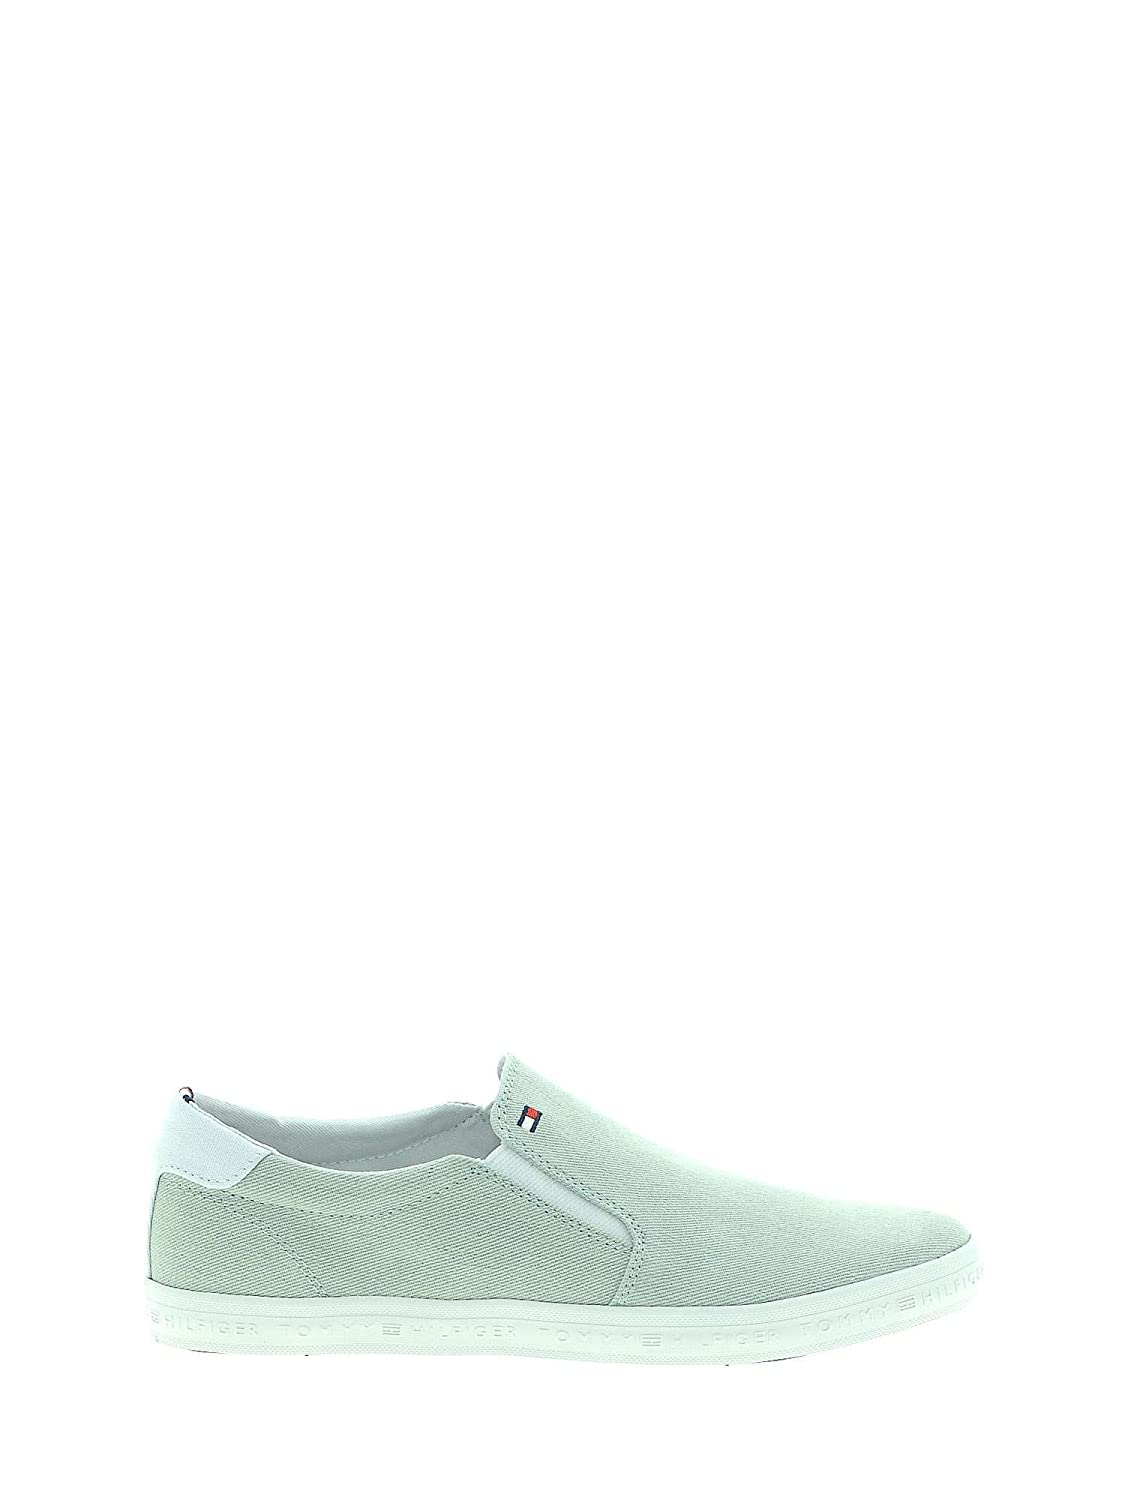 Tommy Hilfiger Essential Slip On Sneaker, Zapatillas para Hombre 43 EU|Green